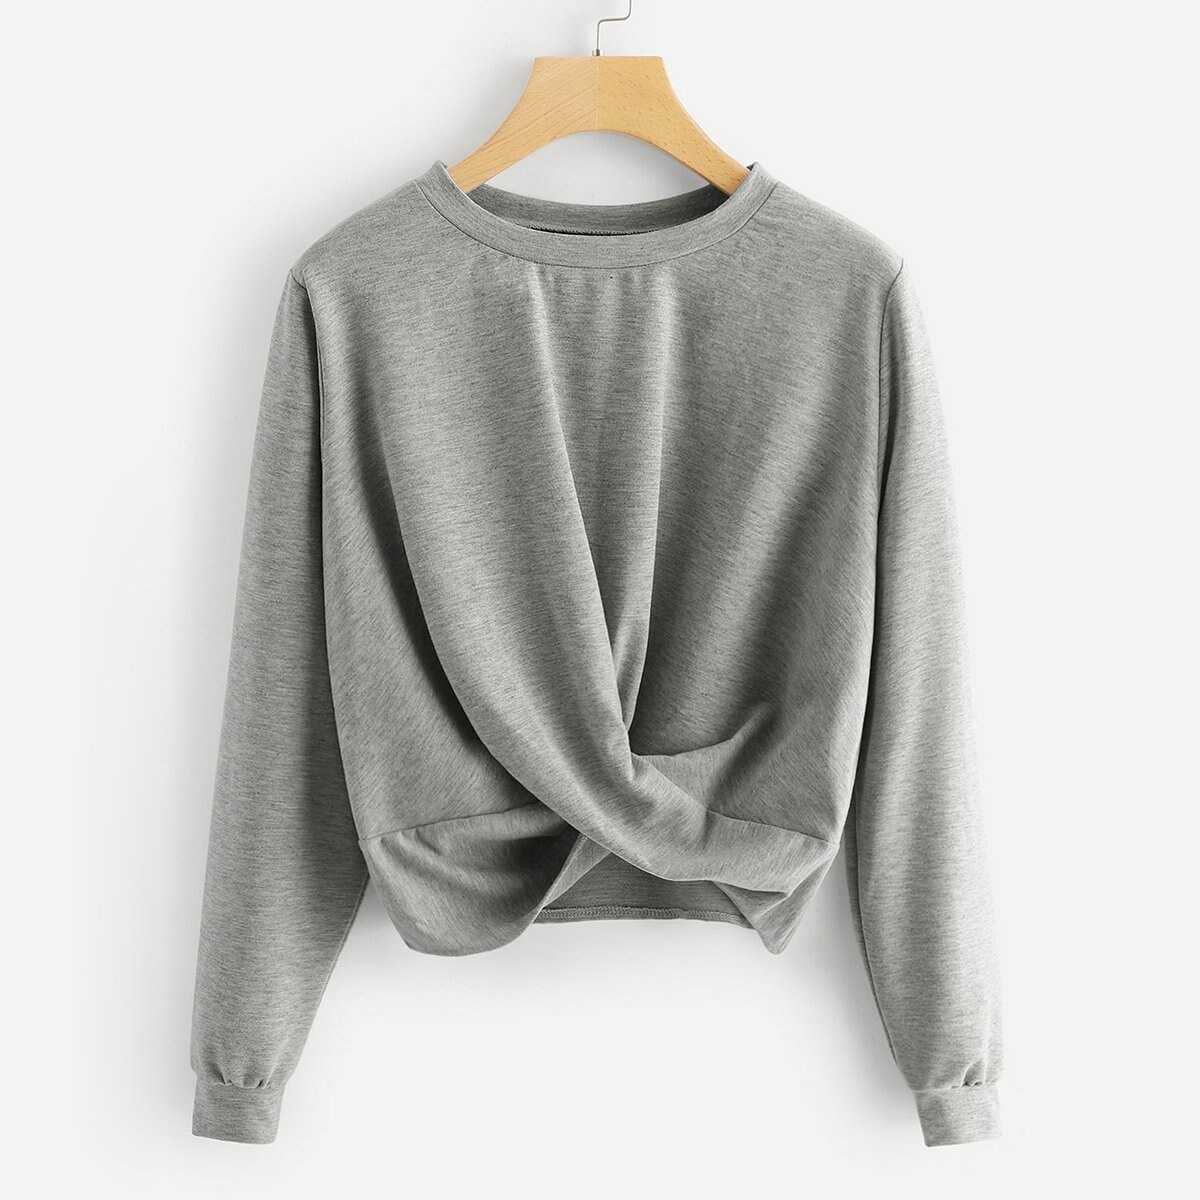 Twist Detail Solid Sweatshirt - Shein - GOOFASH